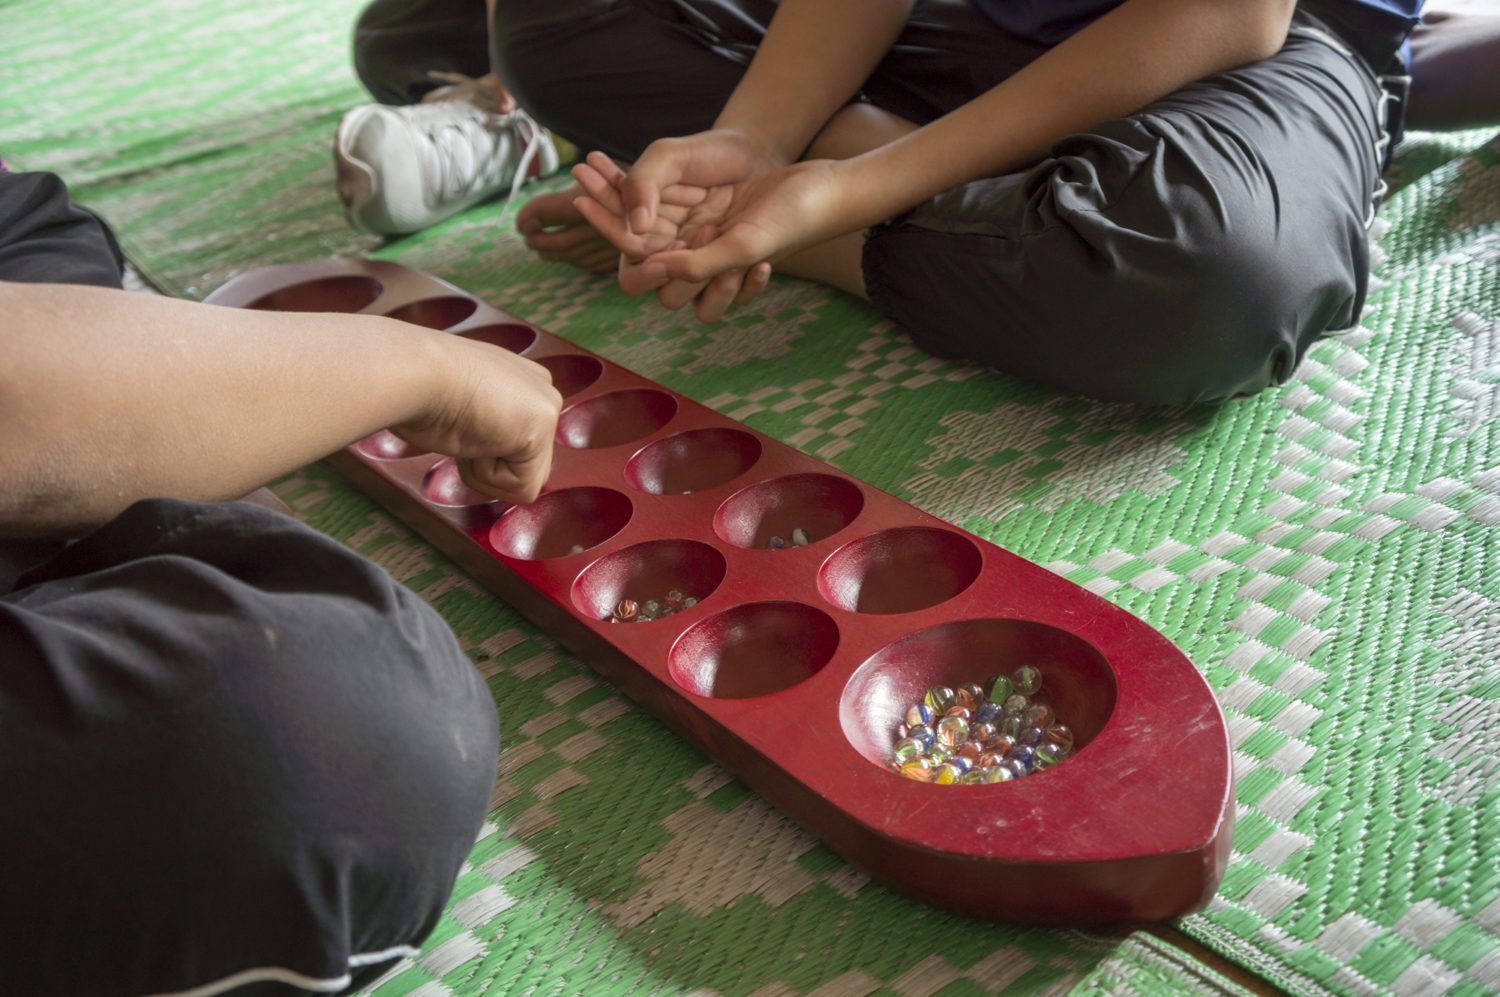 How To Play Mancala The Ancient Game Of Strategy Game On Family